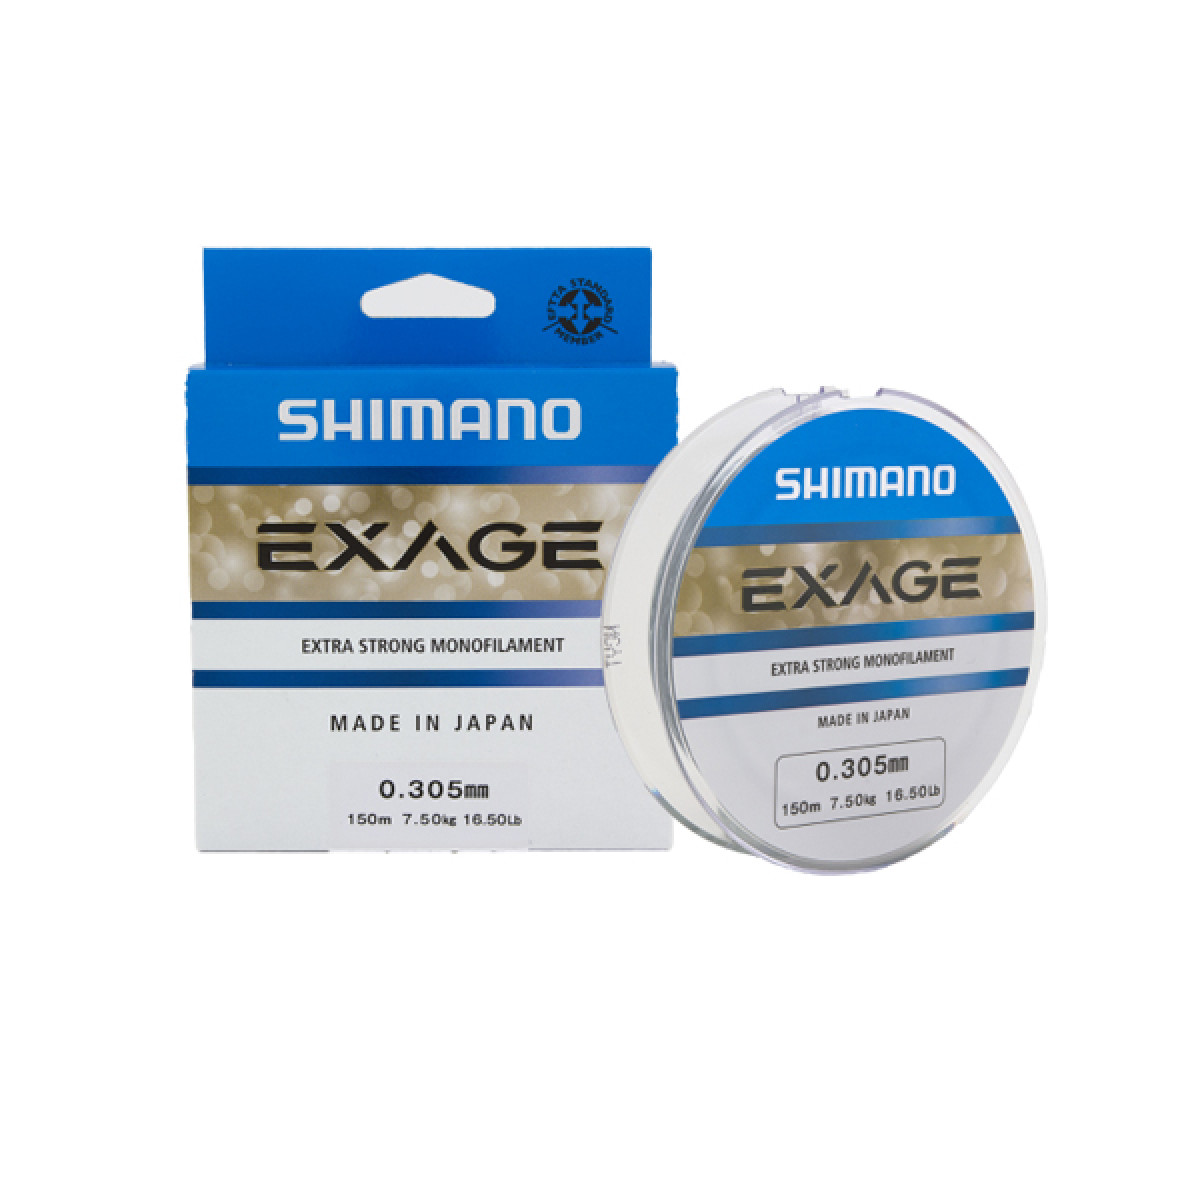 Exage Extra Strong